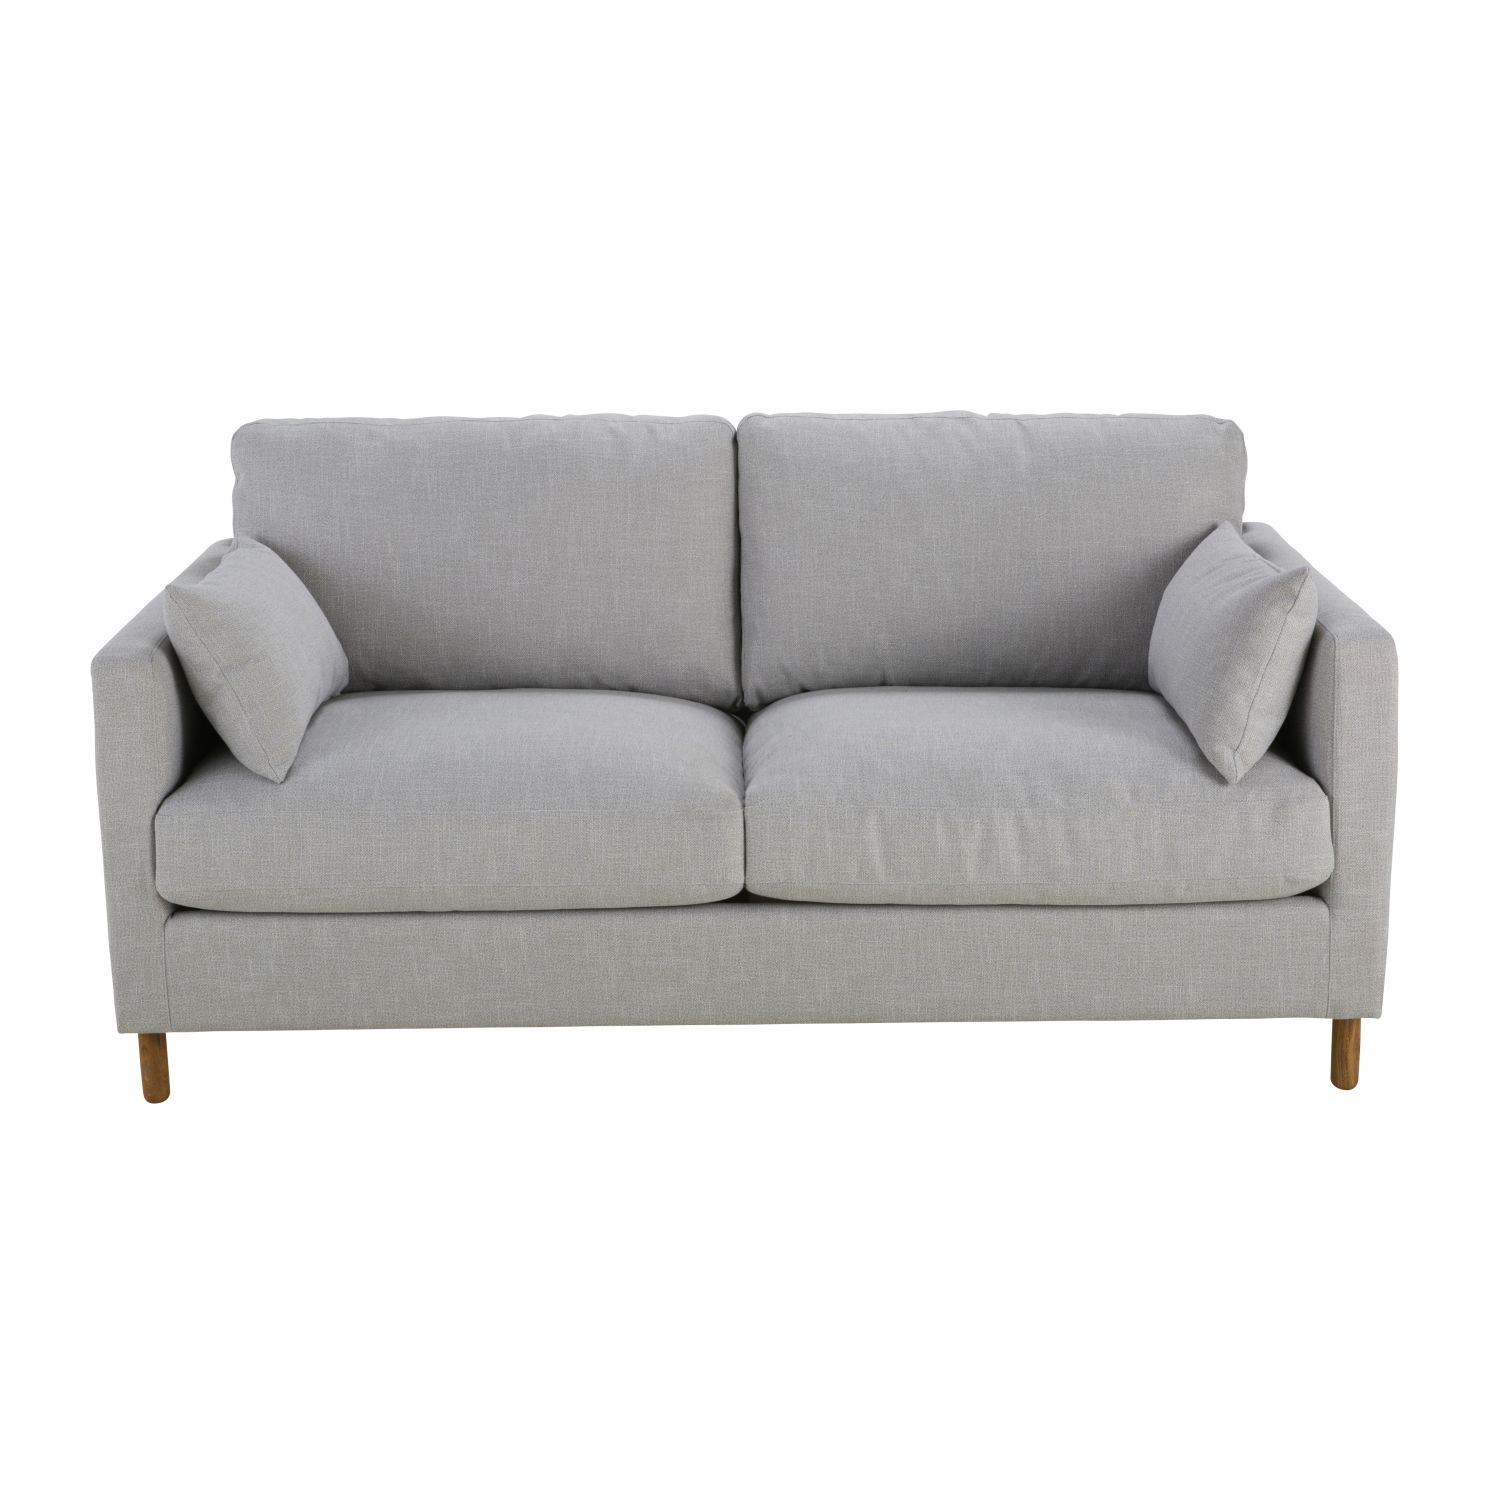 Maison Du Monde Schlafsofa Light Grey 3 Seater Sofa Maisons Du Monde